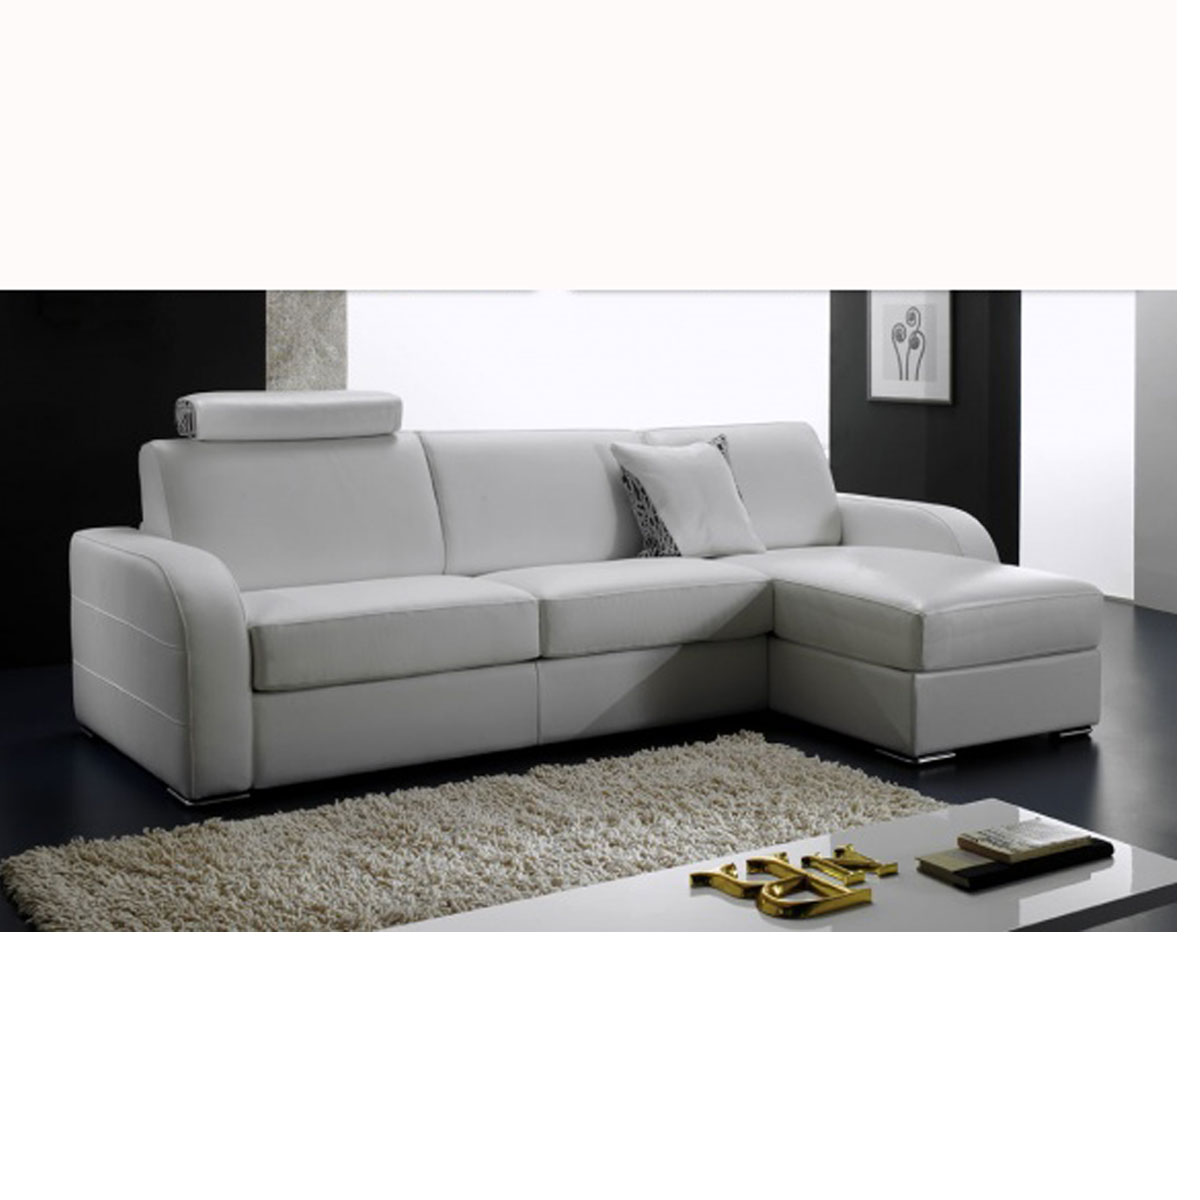 canap d angle convertible petite dimension royal sofa. Black Bedroom Furniture Sets. Home Design Ideas